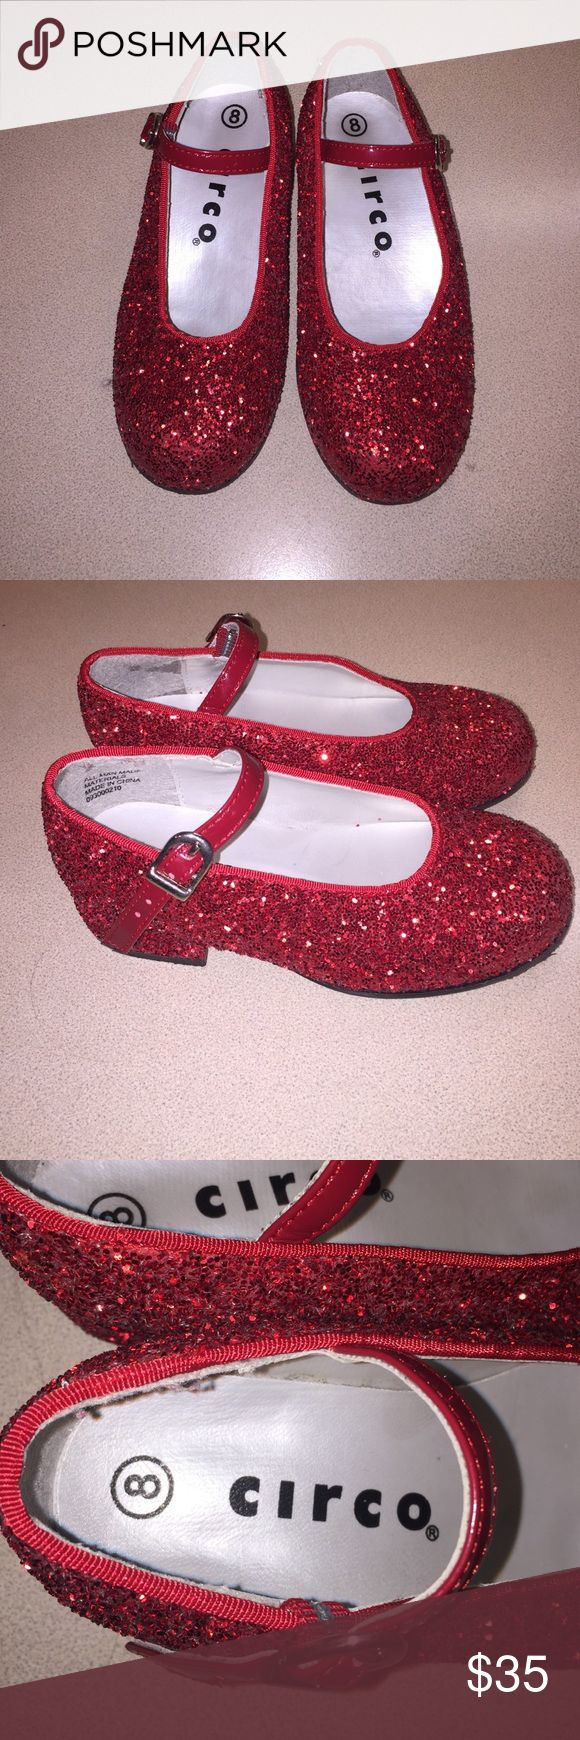 Dorothy inspired dress shoes. These kids shoes are perfect for a fancy dinner out or even a Dorothy inspired Halloween costume. They are super sparkly and have an adjustable tie. Slightly heeled on the bottom. Worn once. Circo Shoes Dress Shoes